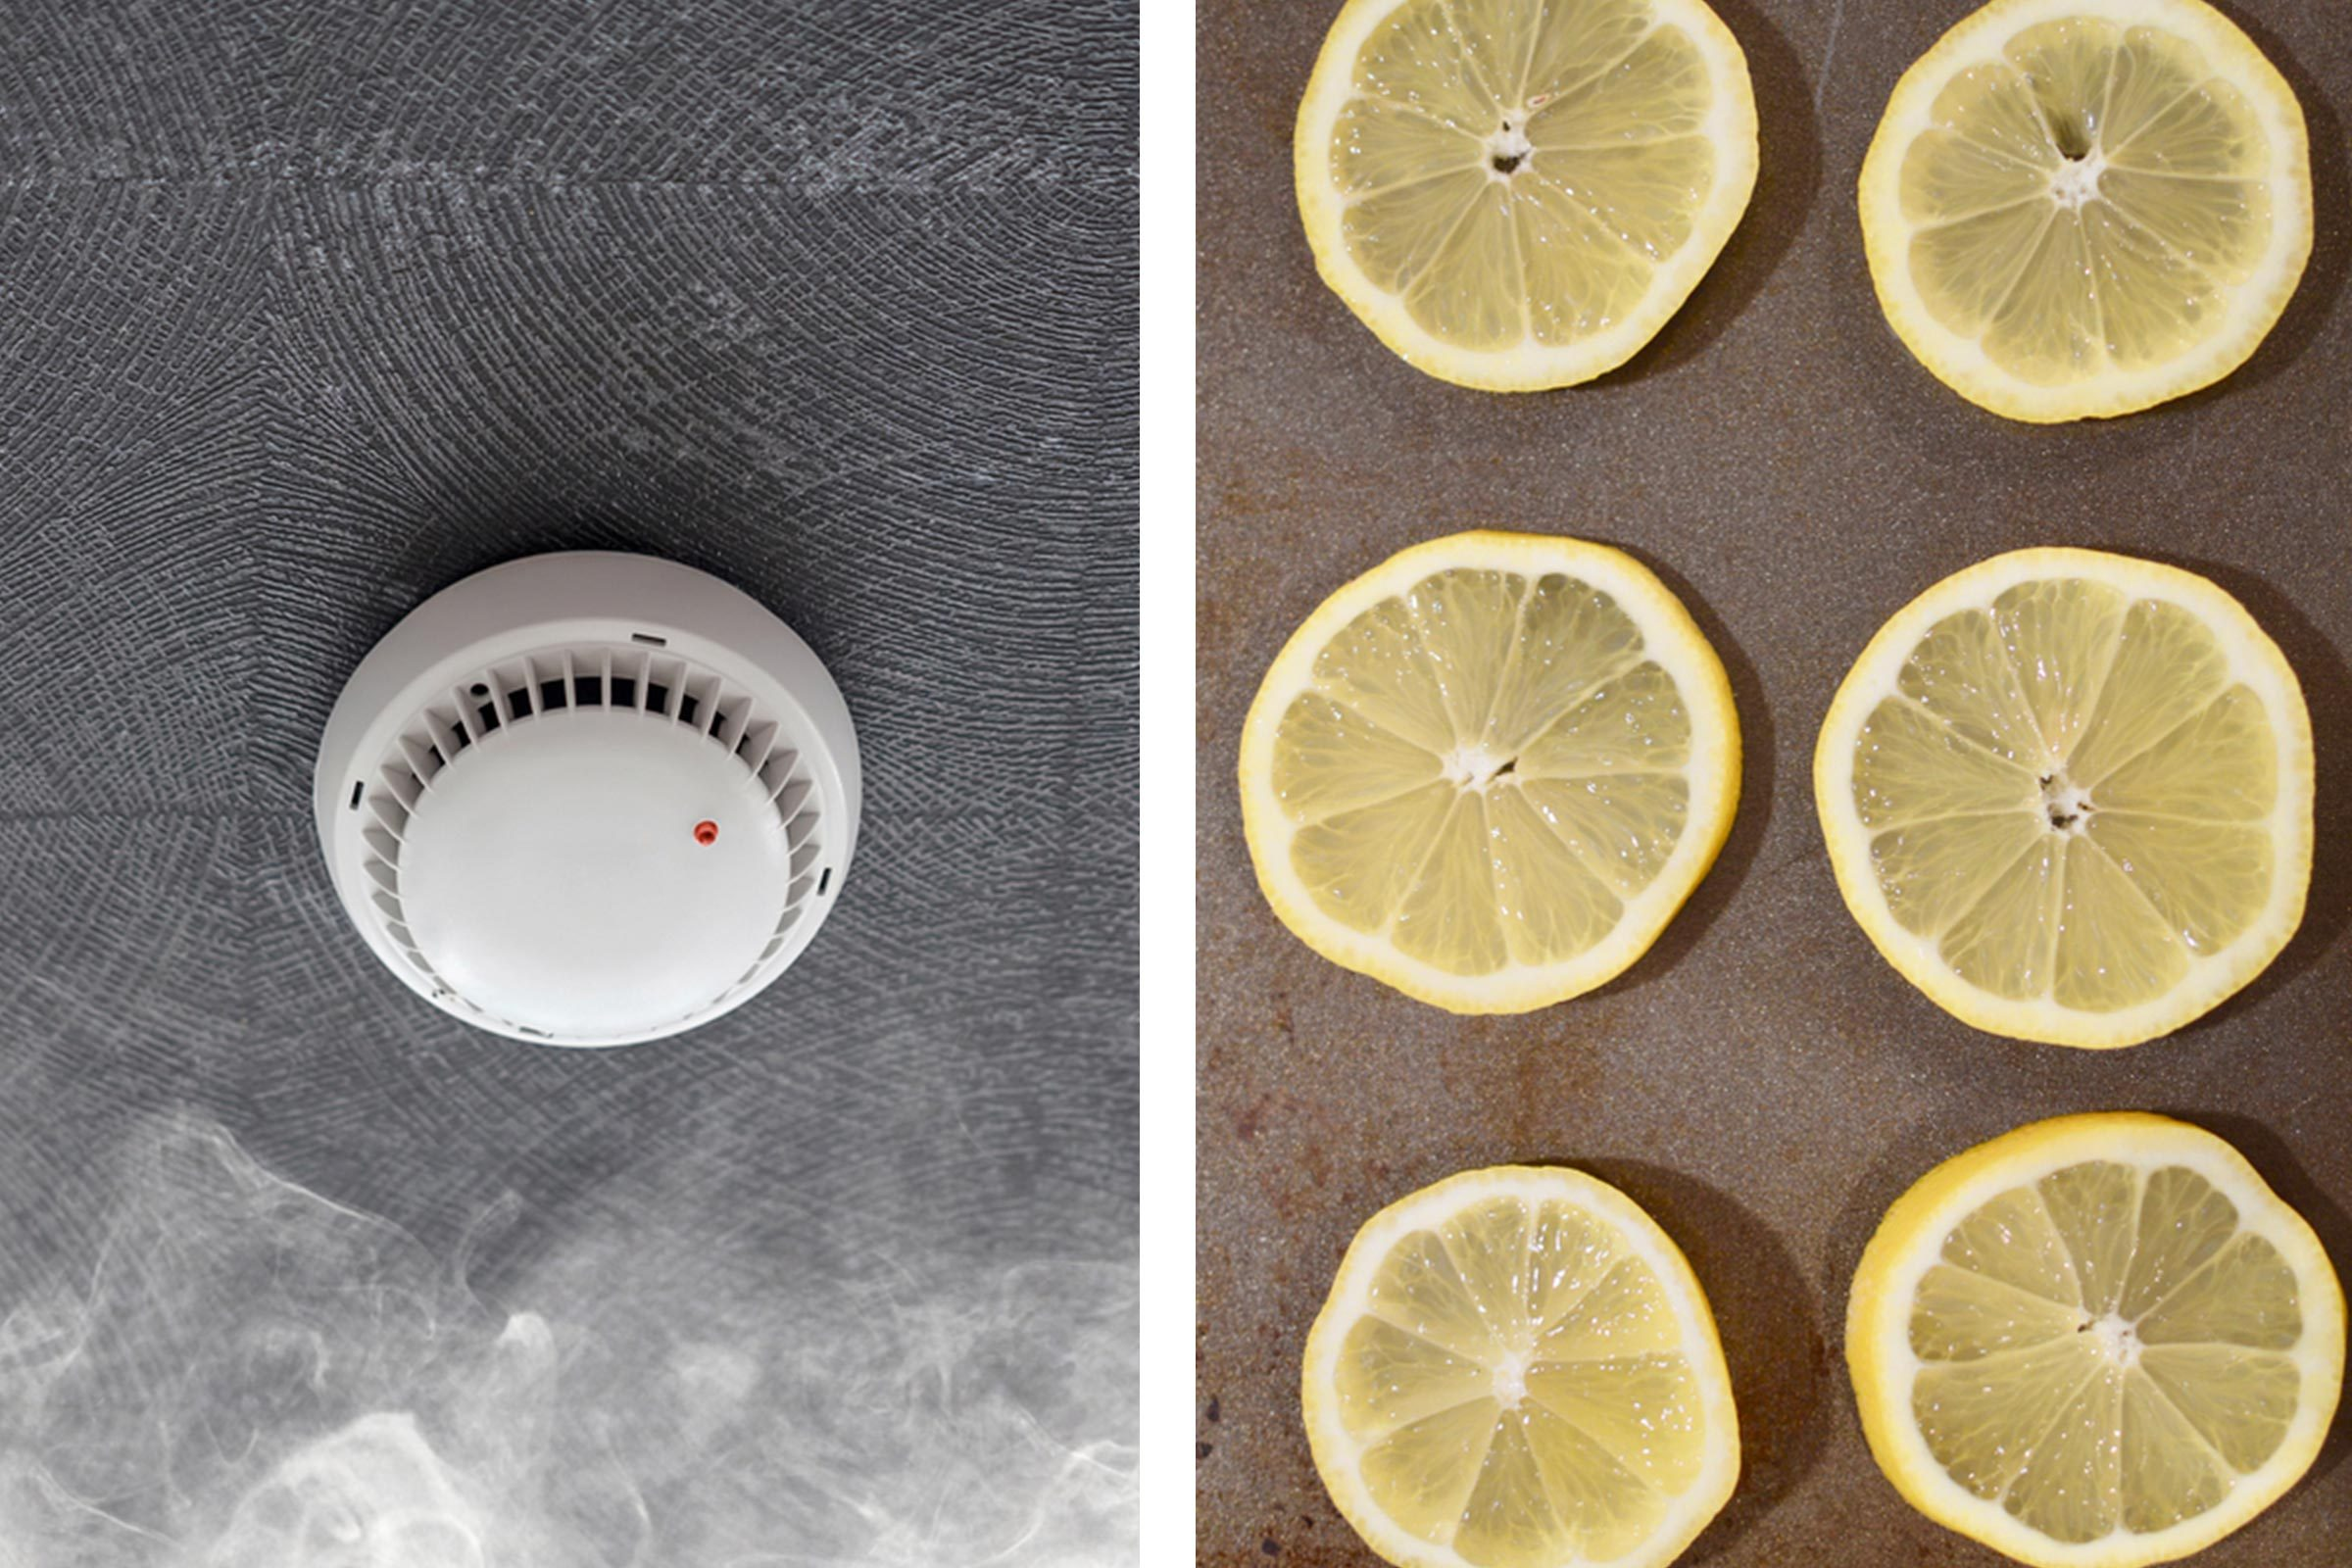 Slide 11 of 21: Did last night's dinner leave an unexpected reek in your kitchen? Wet a washcloth with vinegar and wave it around the room to neutralize any smell. Another method is to slice two lemons and place them on a baking sheet, then preheat your oven at 225°F and bake for 60 to 90 minutes. Once time is up, leave your oven door open and let this natural air freshener work wonders.